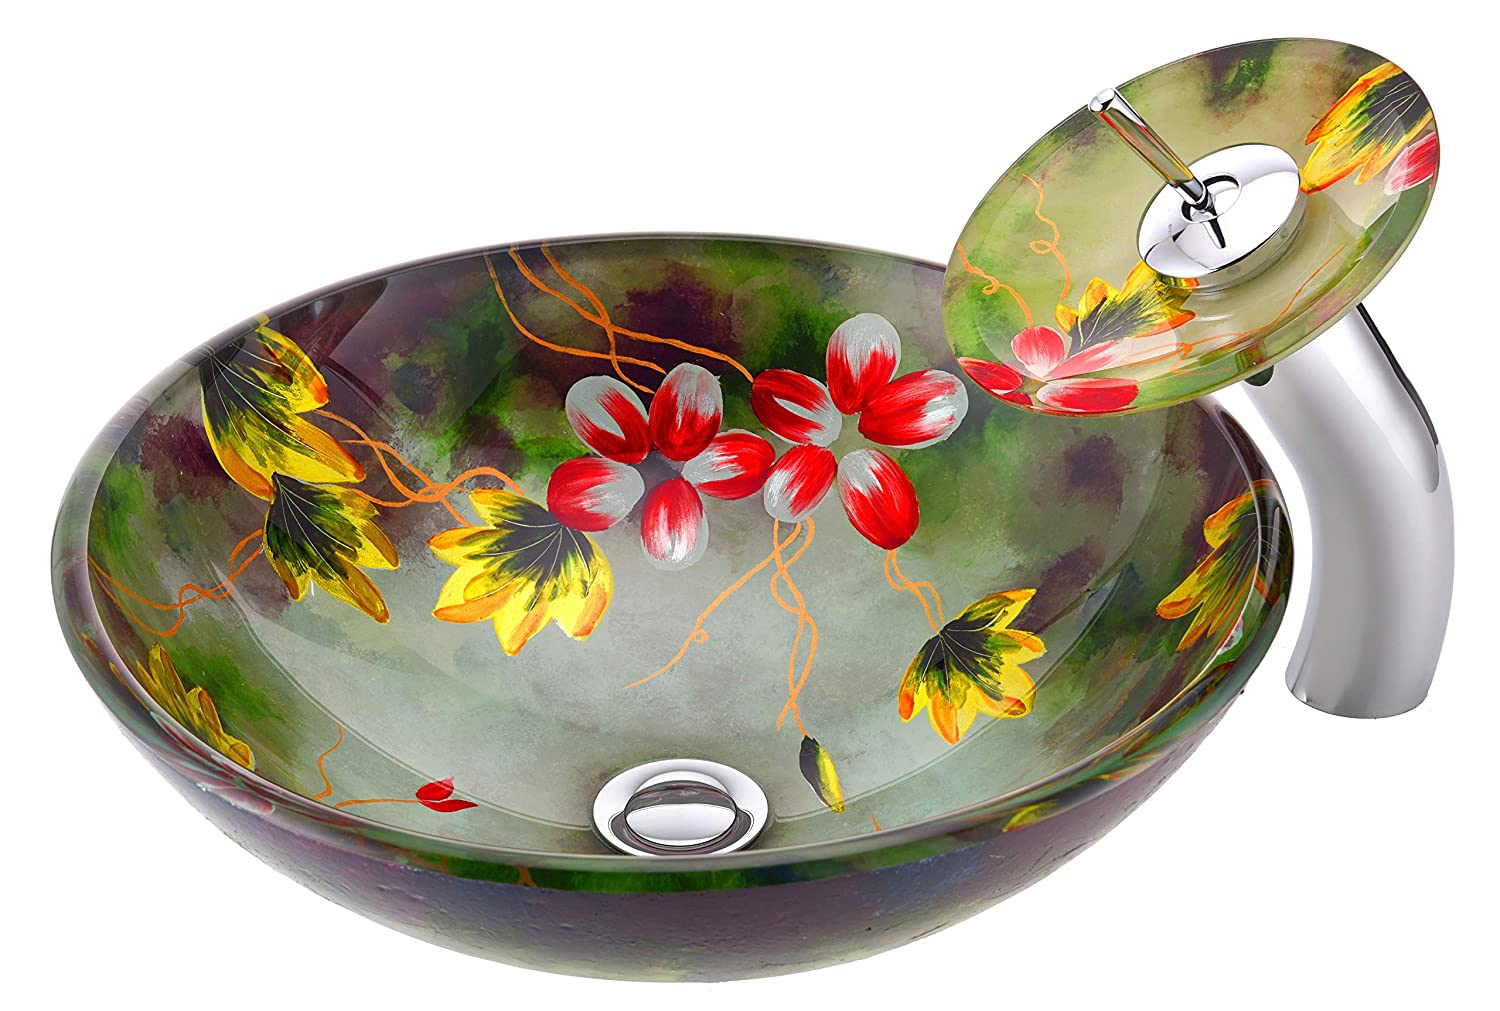 ANZZI Impasto Tempered Glass Vessel Sink and Faucet Combo in Floral Mural Finish Round Bowl Sink with Matching Waterfall Faucet Set Bathroom Sinks Above Counter and Vessel Faucet Combo LS-AZ217